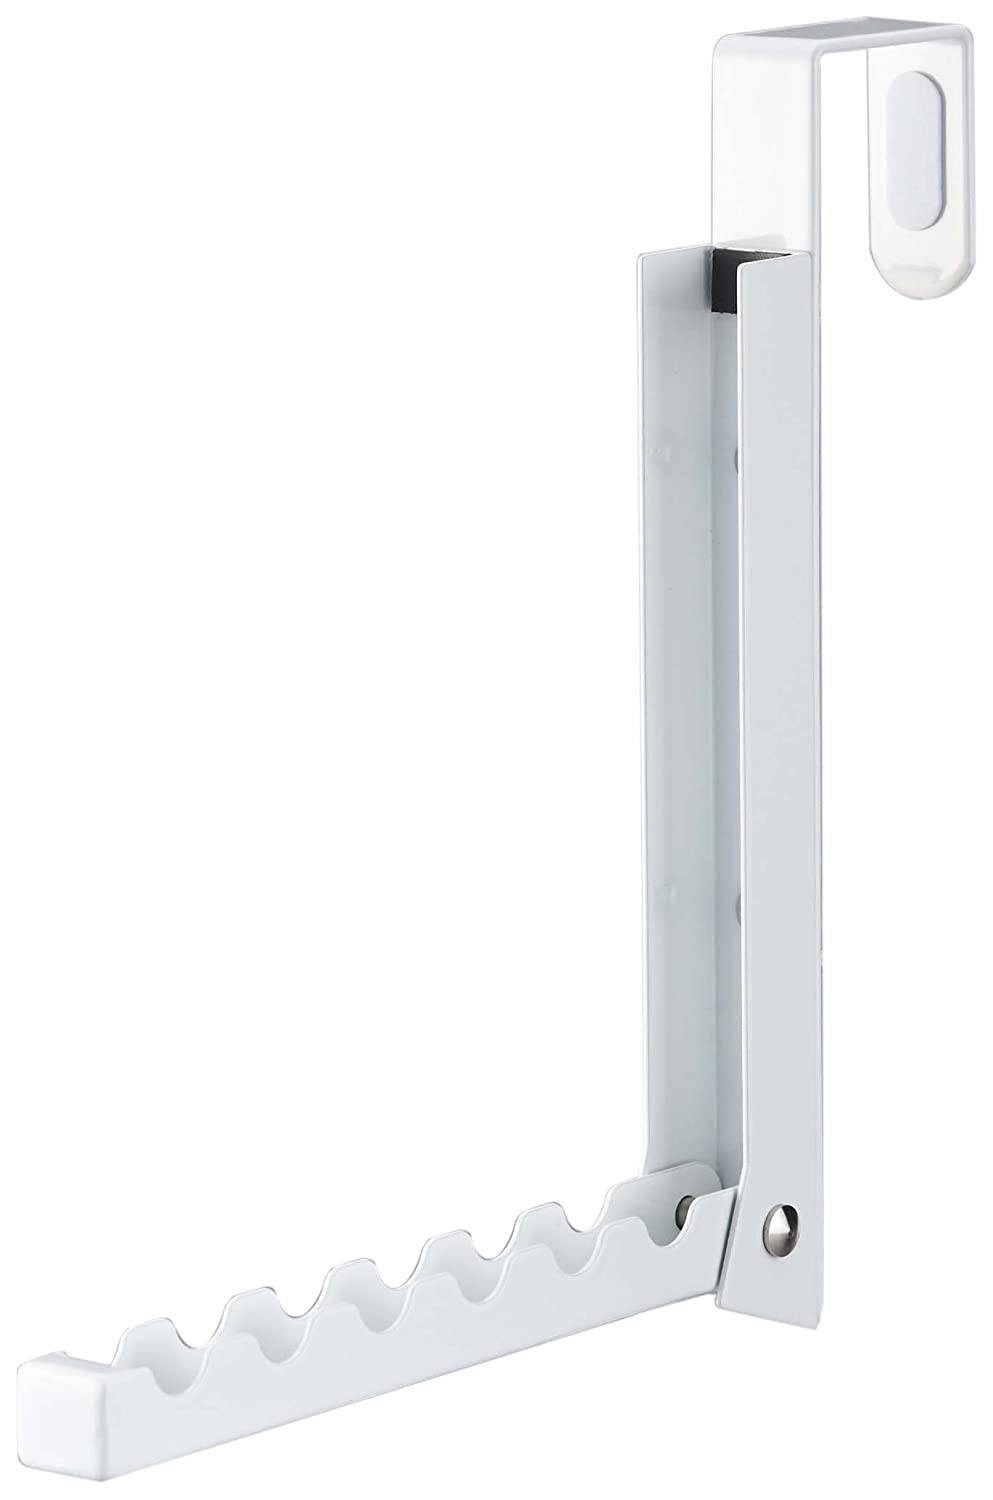 Over The Door 6 Hooks Folding Organizer in White Finish 8 L Red Co P2HG5